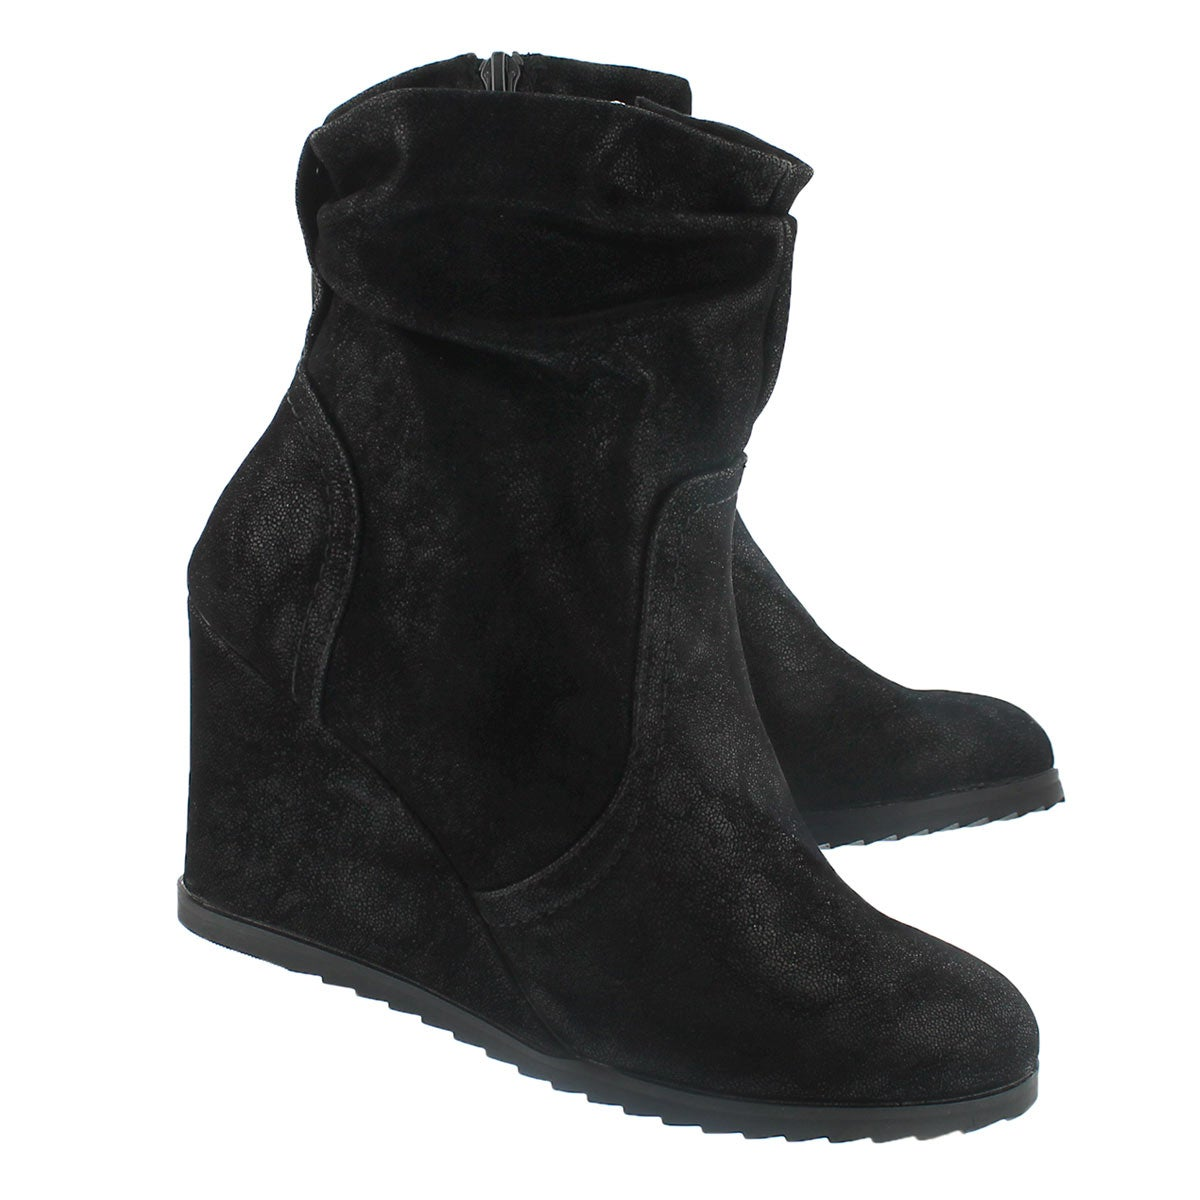 Lds Blondie Lo blk wedge ankle boot